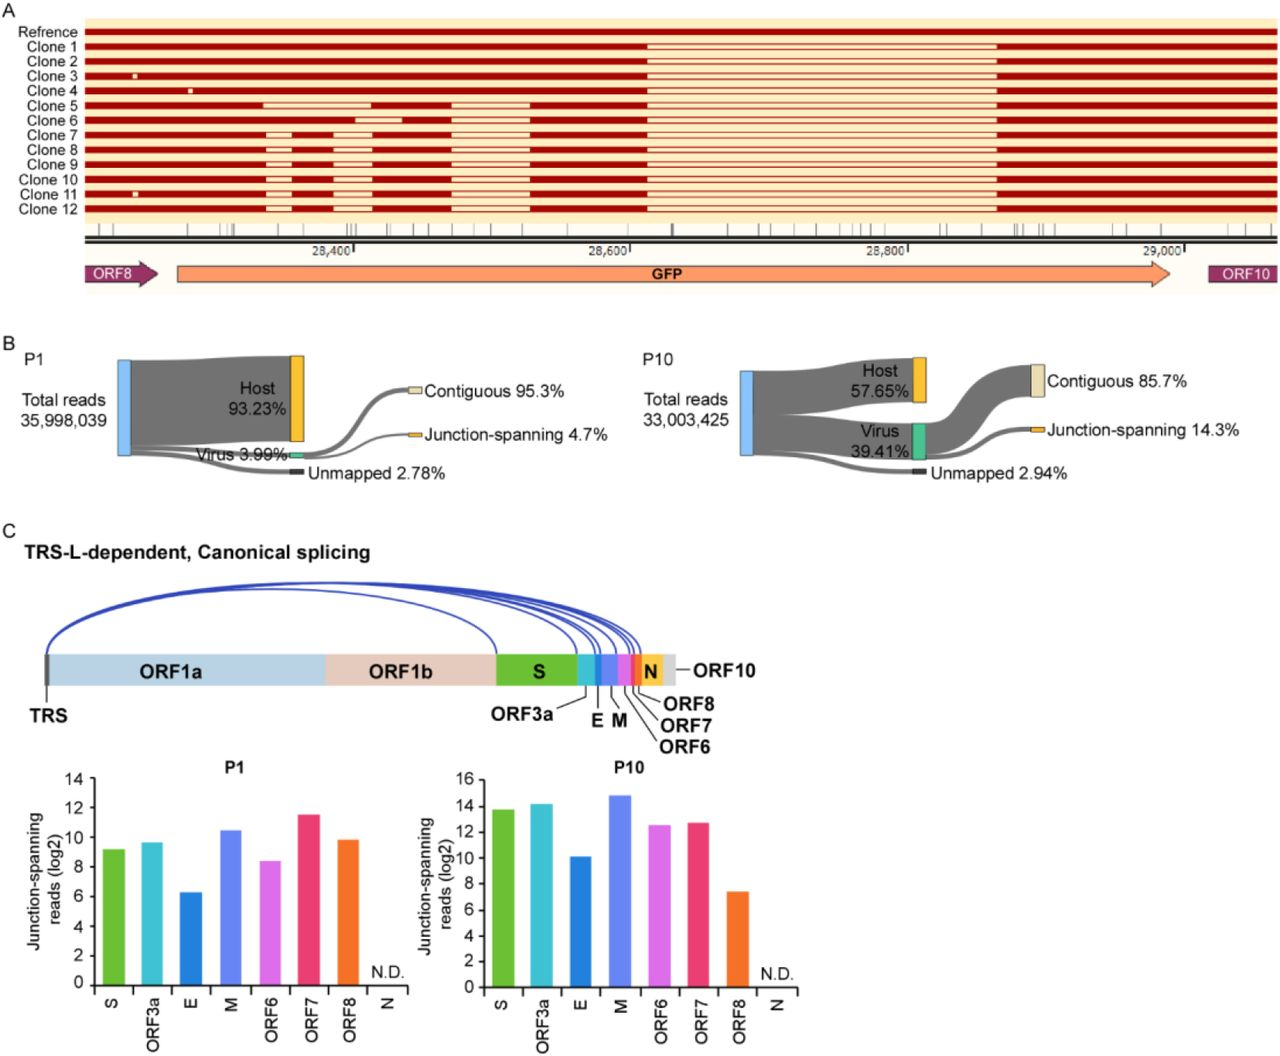 Characterization of the genetic stability of SARS-CoV-2 GFP/ΔN virus. (A) RT-PCR products from P10 virus infected cell passage were cloned into pEASY-Blunt vector, and 12 colonies were randomly chosen for DNA sequences analysis. Multiple deletions were detected in the amplicon. (B) Categories of mapped reads from P1 and P10 virus infected Caco-2-N cells. (C) Canonical discontinuous transcription (top) that is mediated by TRS-L (TRS in the leader) and TRS-B (TRS in the body). Quantification of junction-reads from canonical discontinuous transcripts post P1 and P10 virus infection.